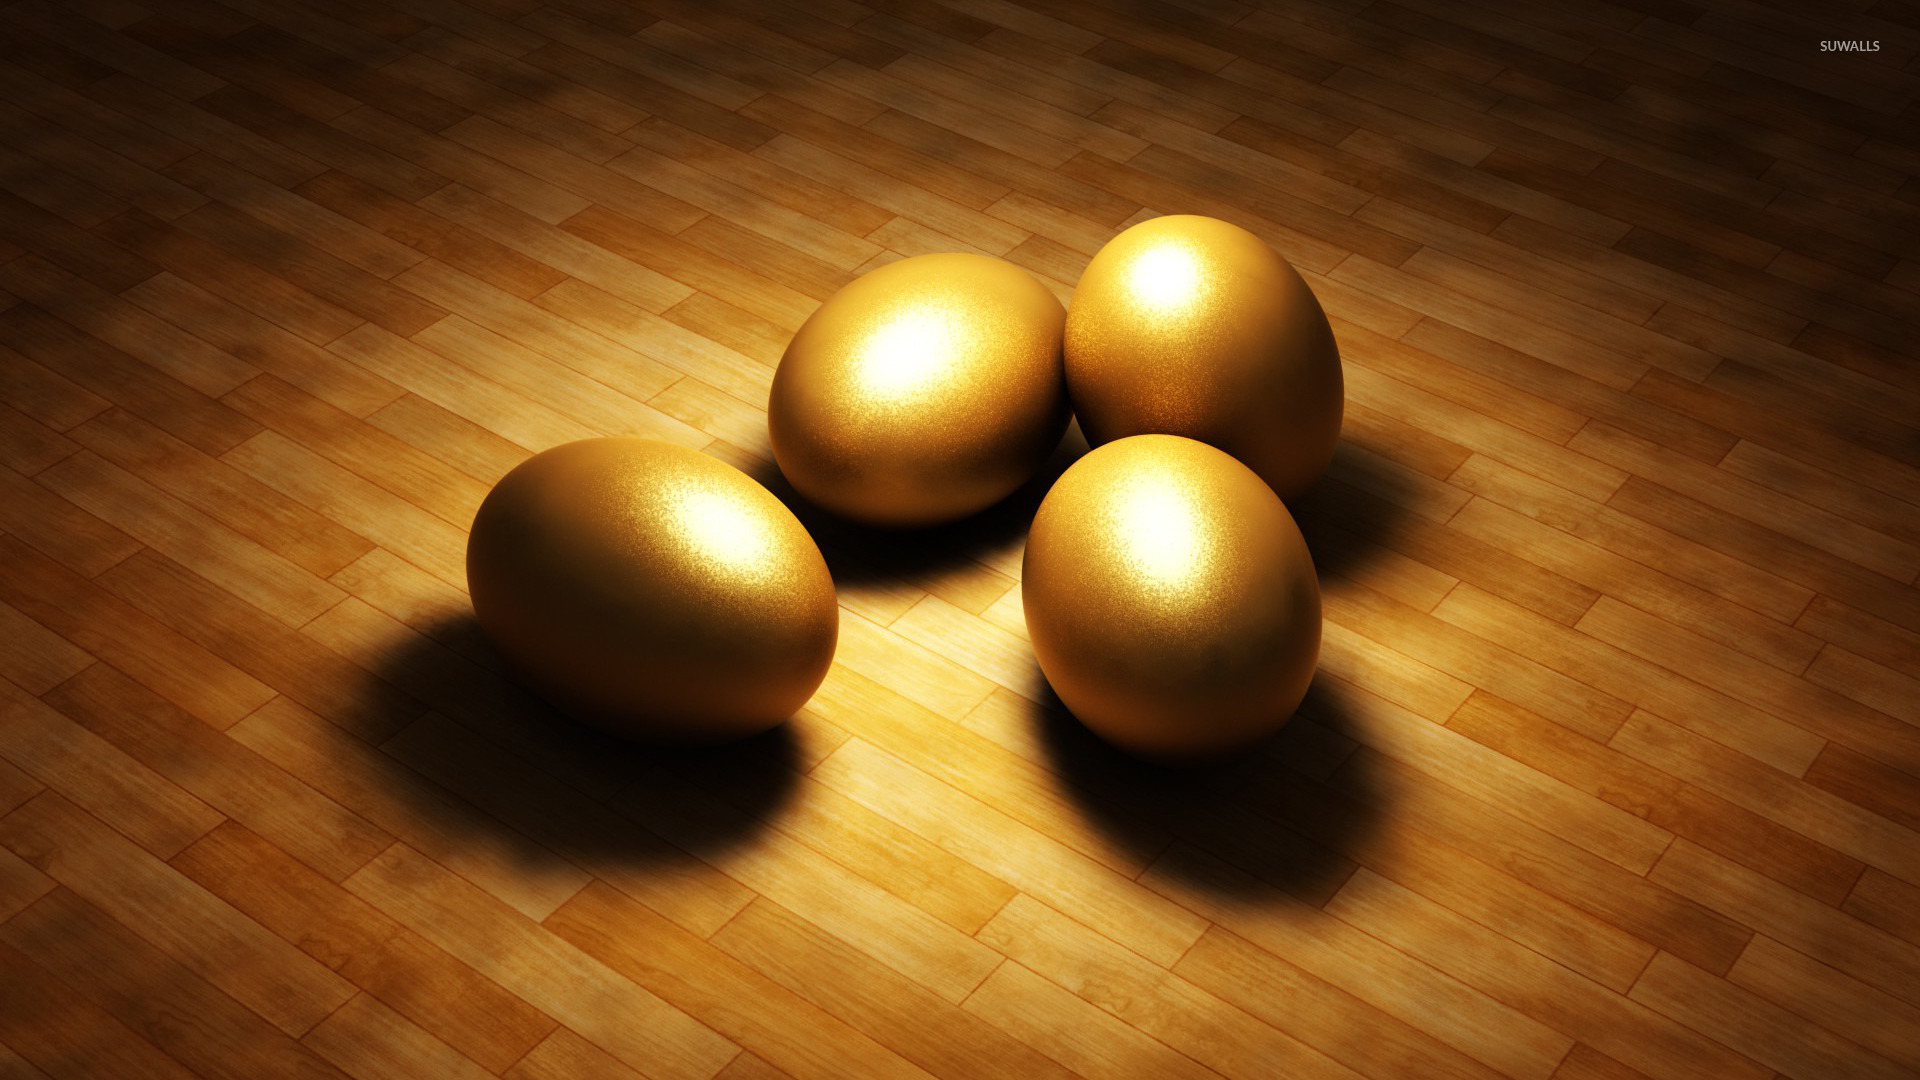 Happy Easter Wallpaper Quotes Golden Eggs Wallpaper 3d Wallpapers 22586